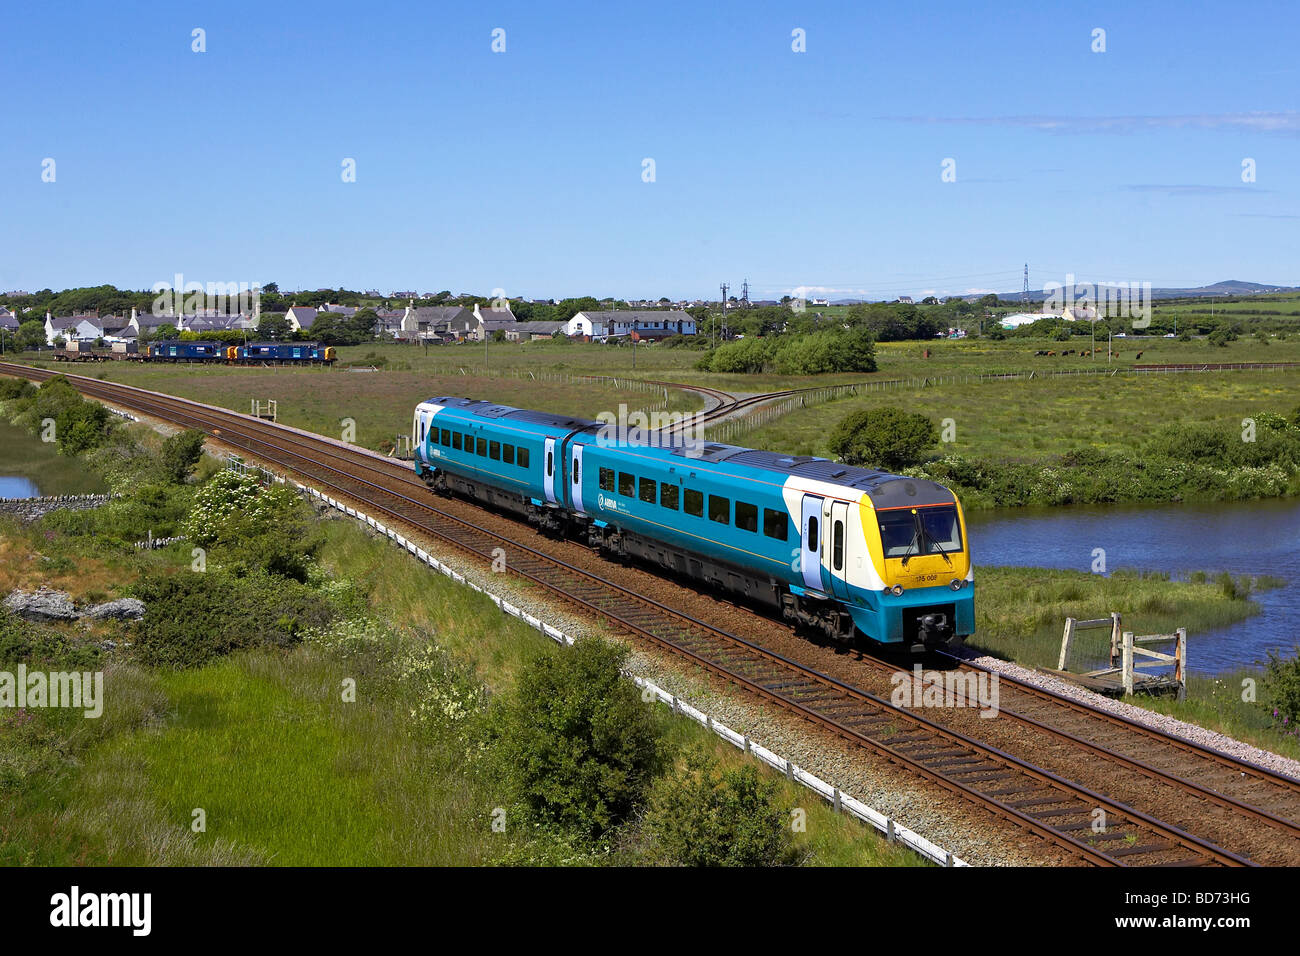 Arriva Trains Wales 175 008 passes Valley on Anglesey - Stock Image